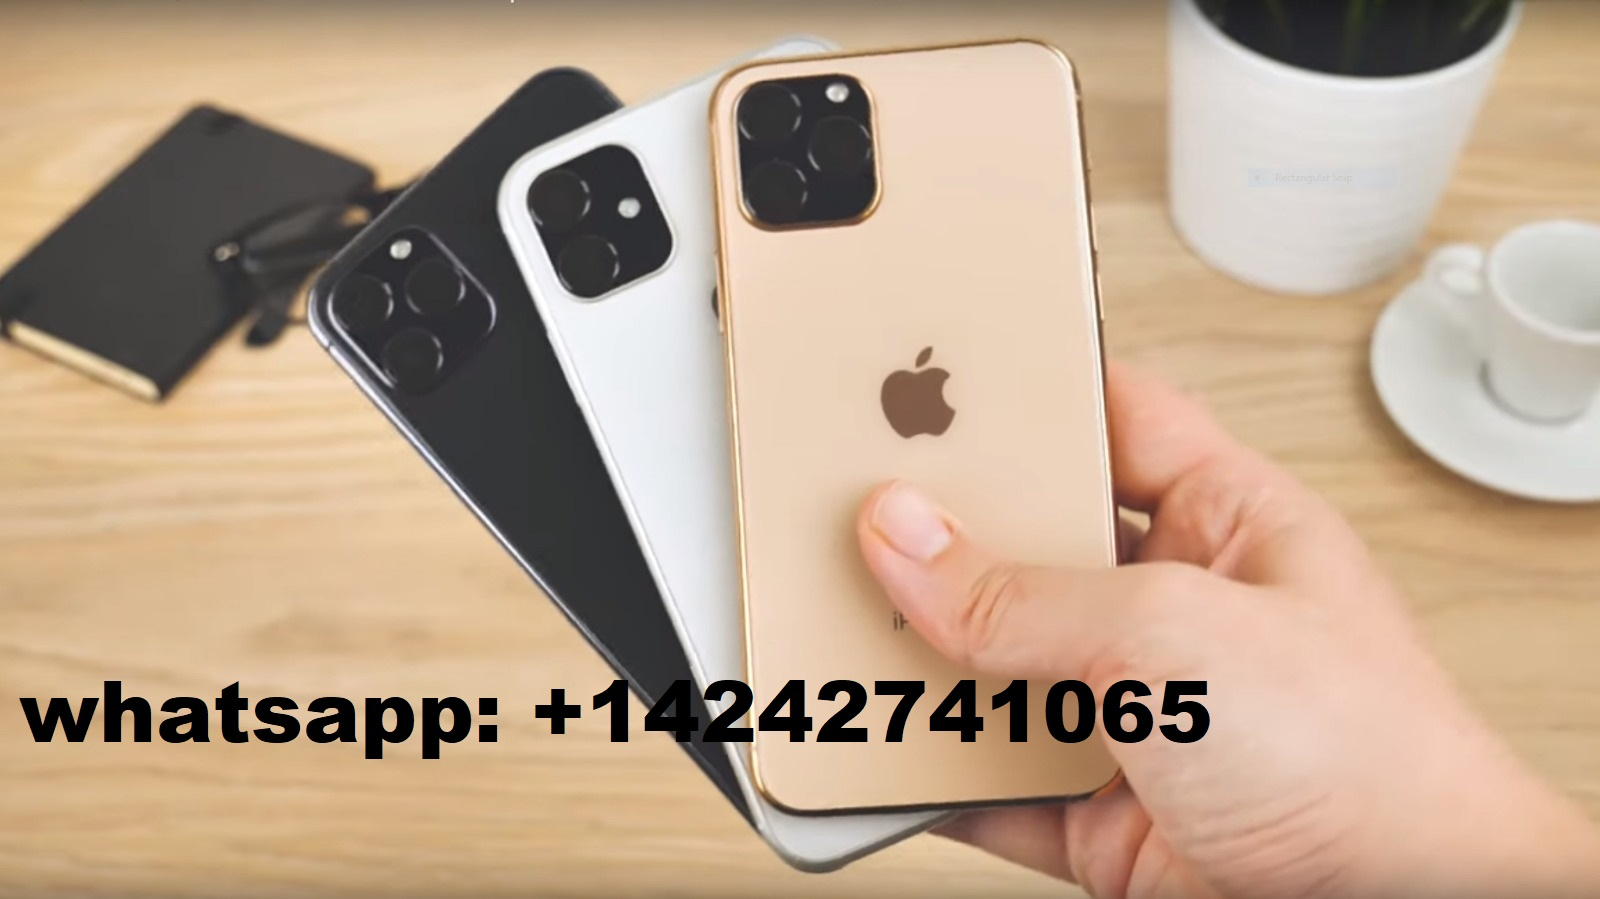 Wholesale For Apple iPhone 11, Apple iPhone 11 Pro, Apple iPhone 11 Pro Max 256GB / 512GB